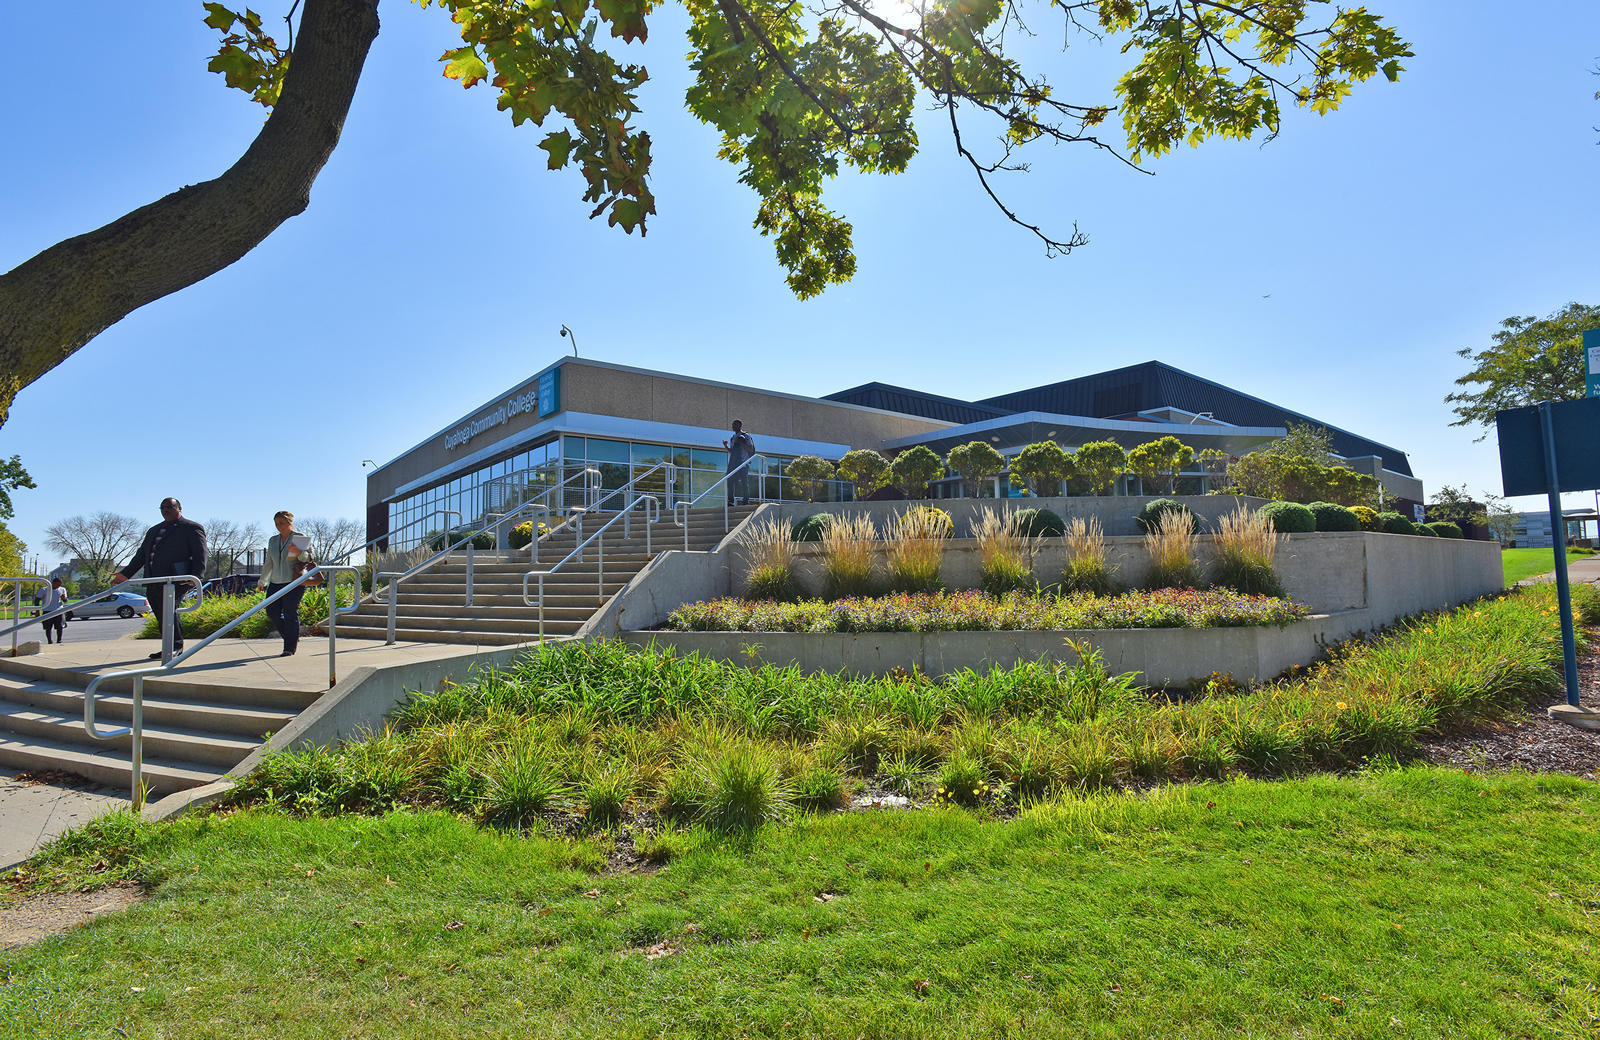 Cuyahoga Community College Health & Wellness Center